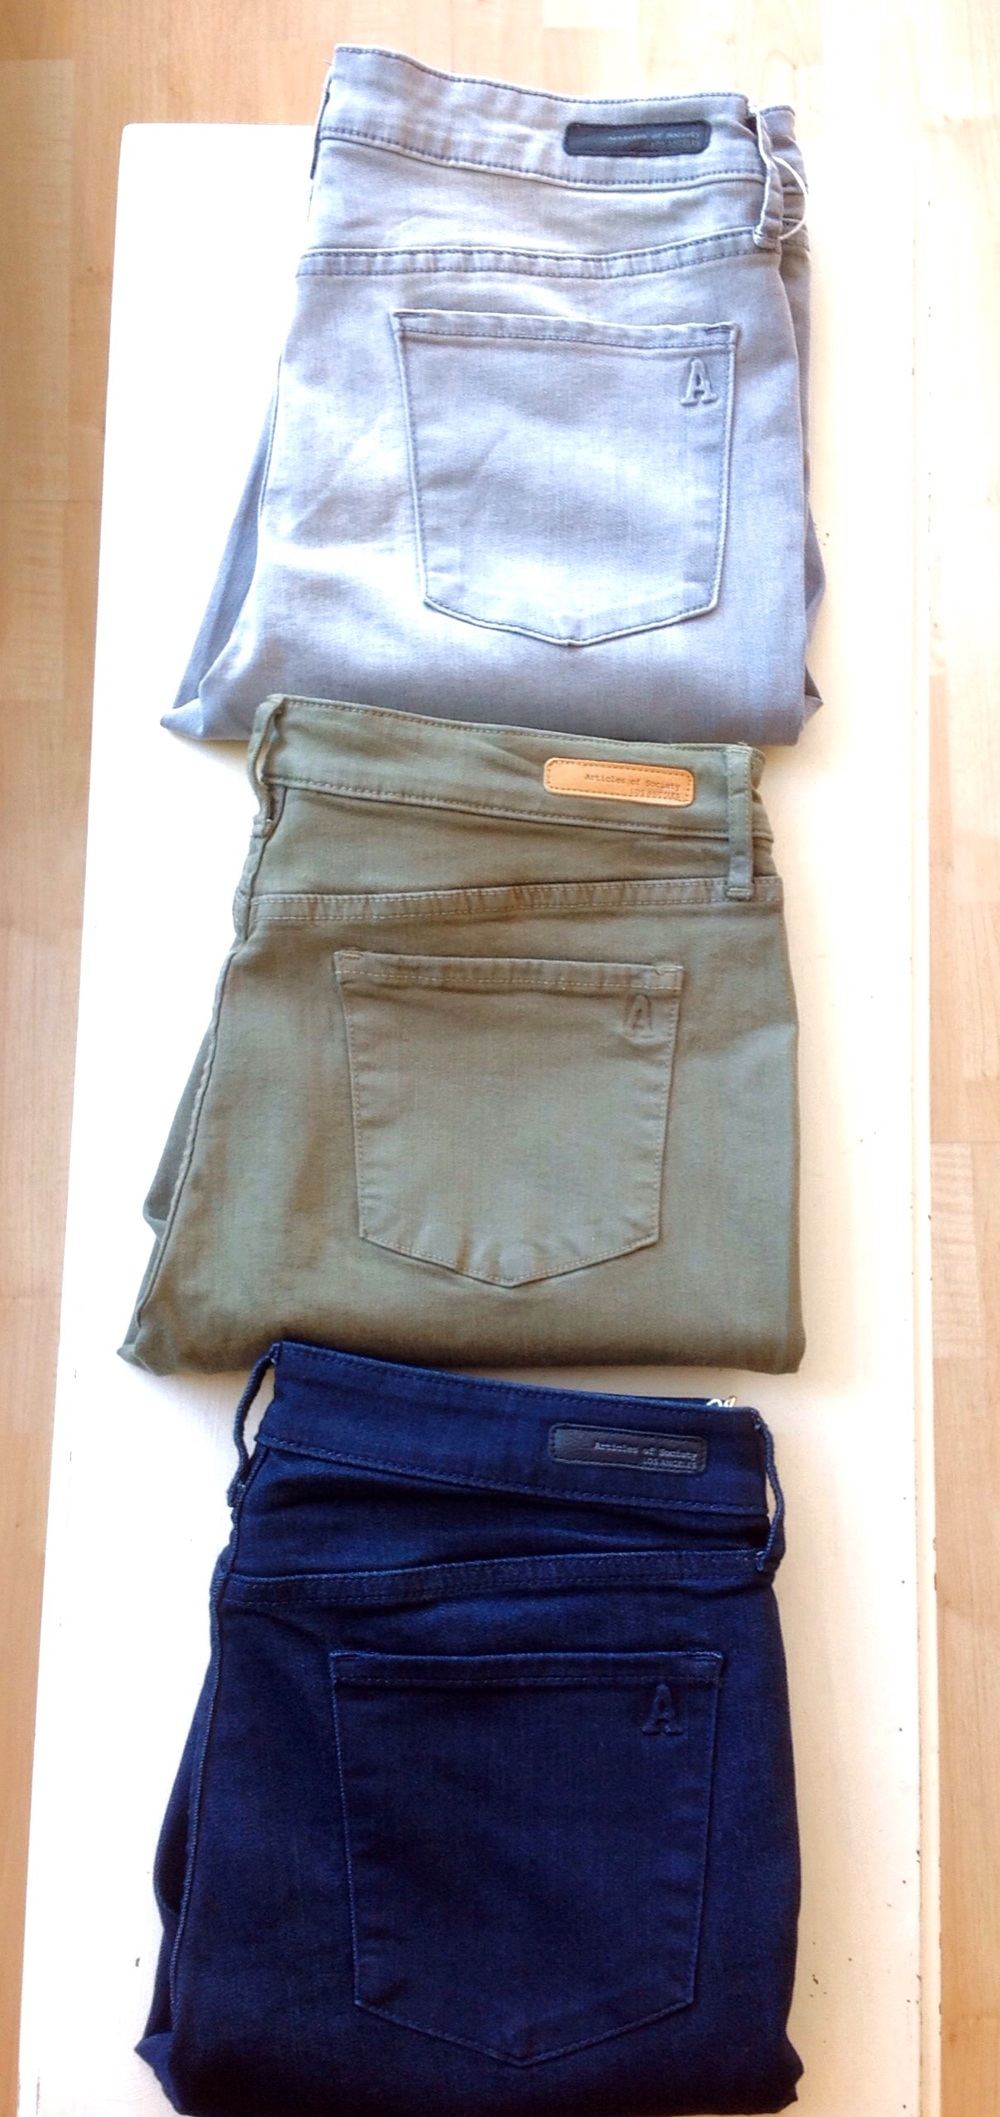 Articles of Society skinny jeans in dark wash, olive, and light grey, $59 & $64